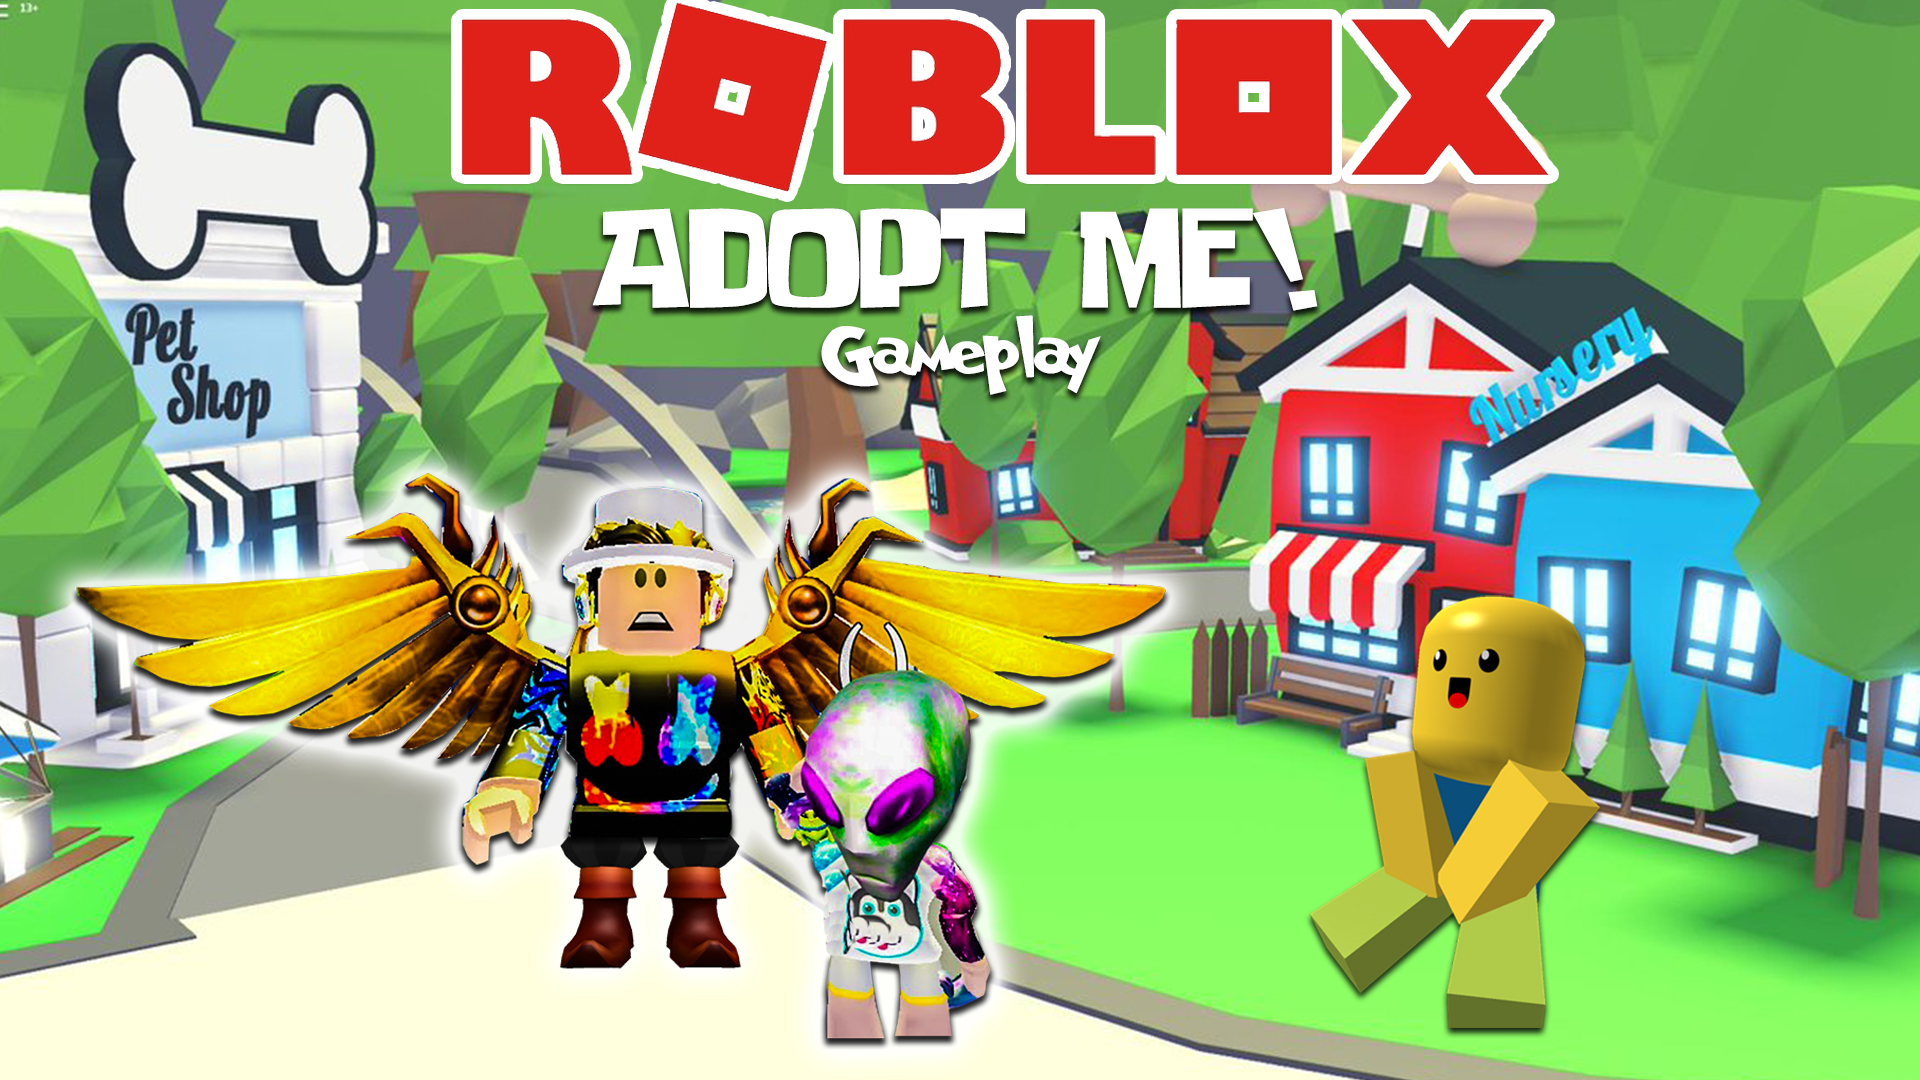 me on roblox before 3 roblox memes roblox shirt games Watch Clip Roblox Adopt Me Gameplay Prime Video